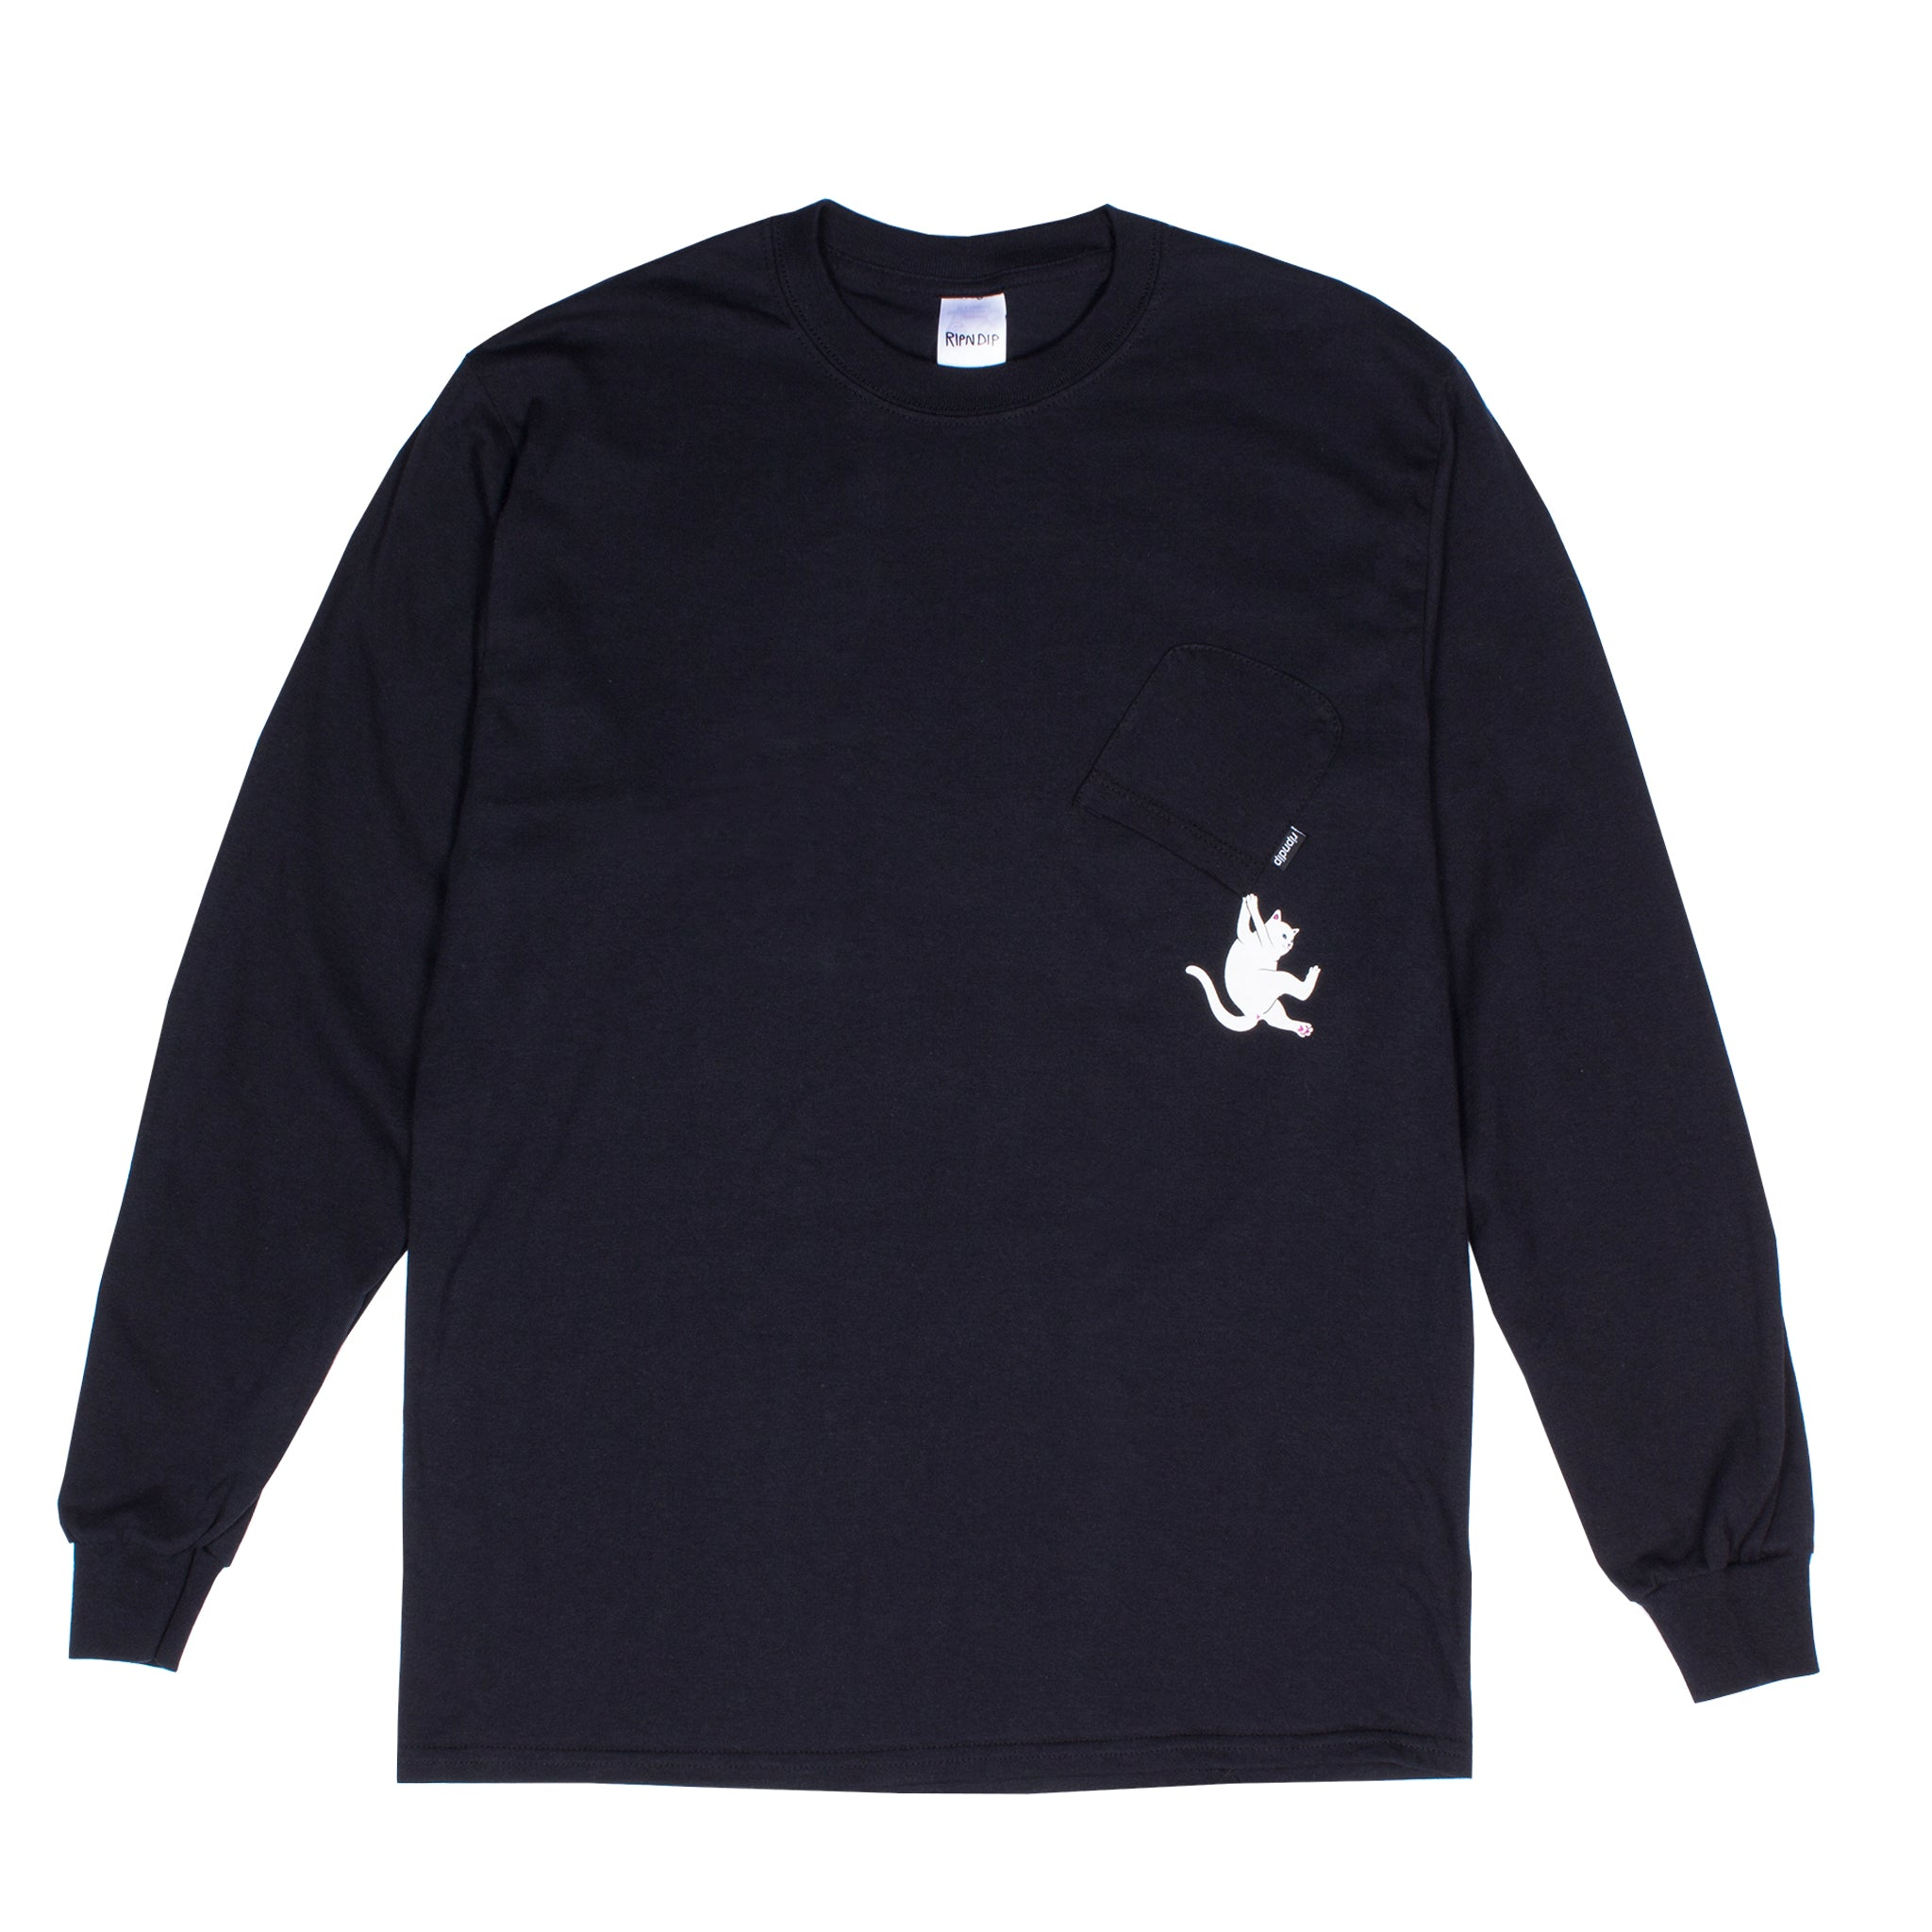 Hang In There L/S (Black)